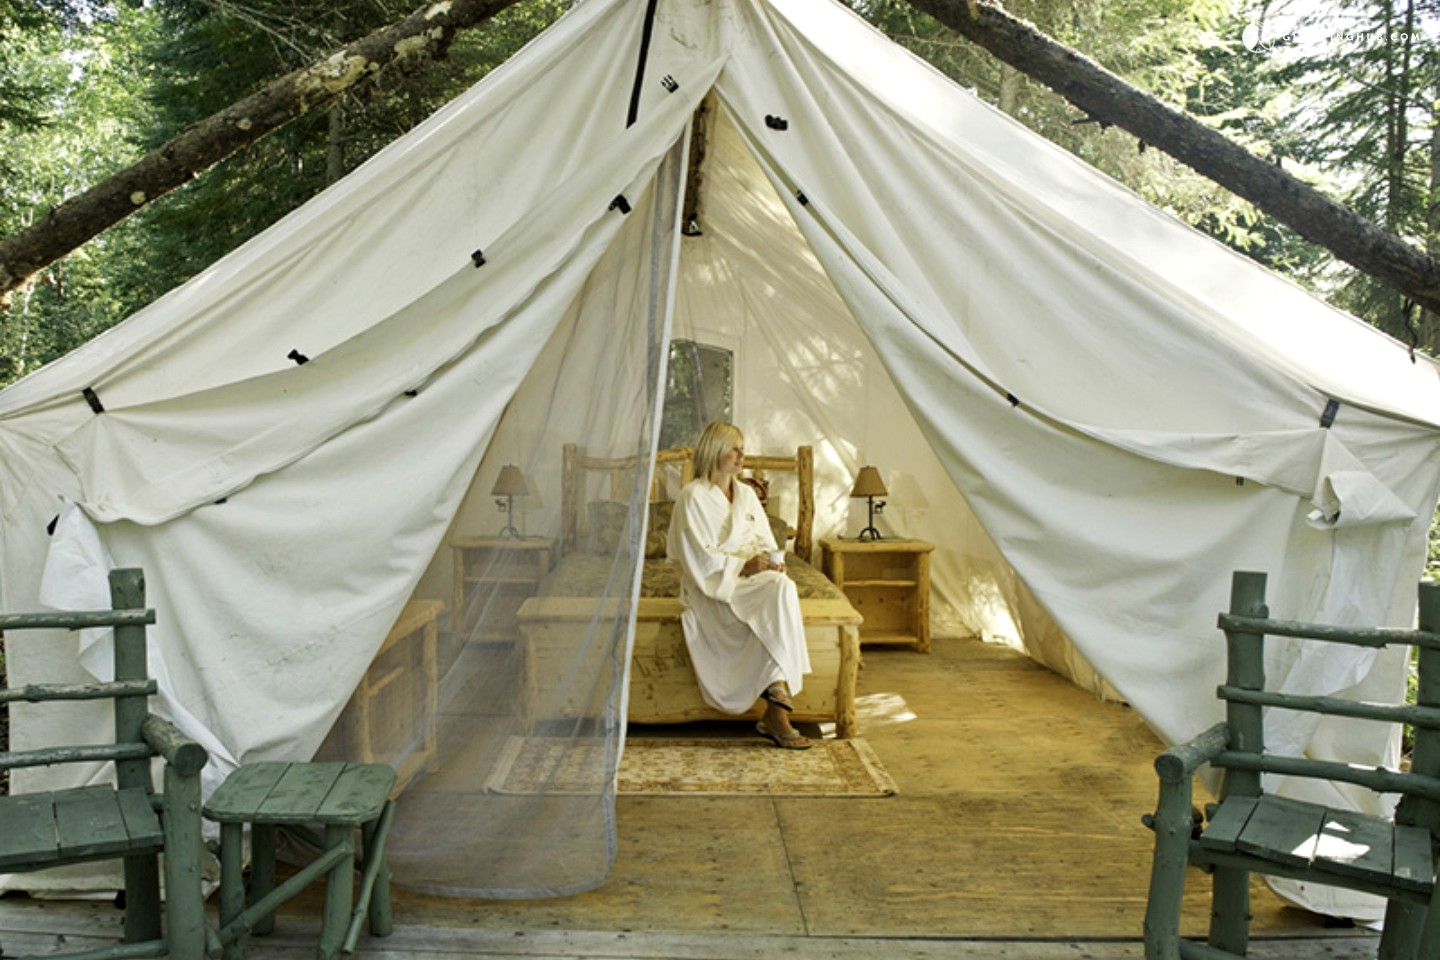 Luxury canvas tent rental - glamping